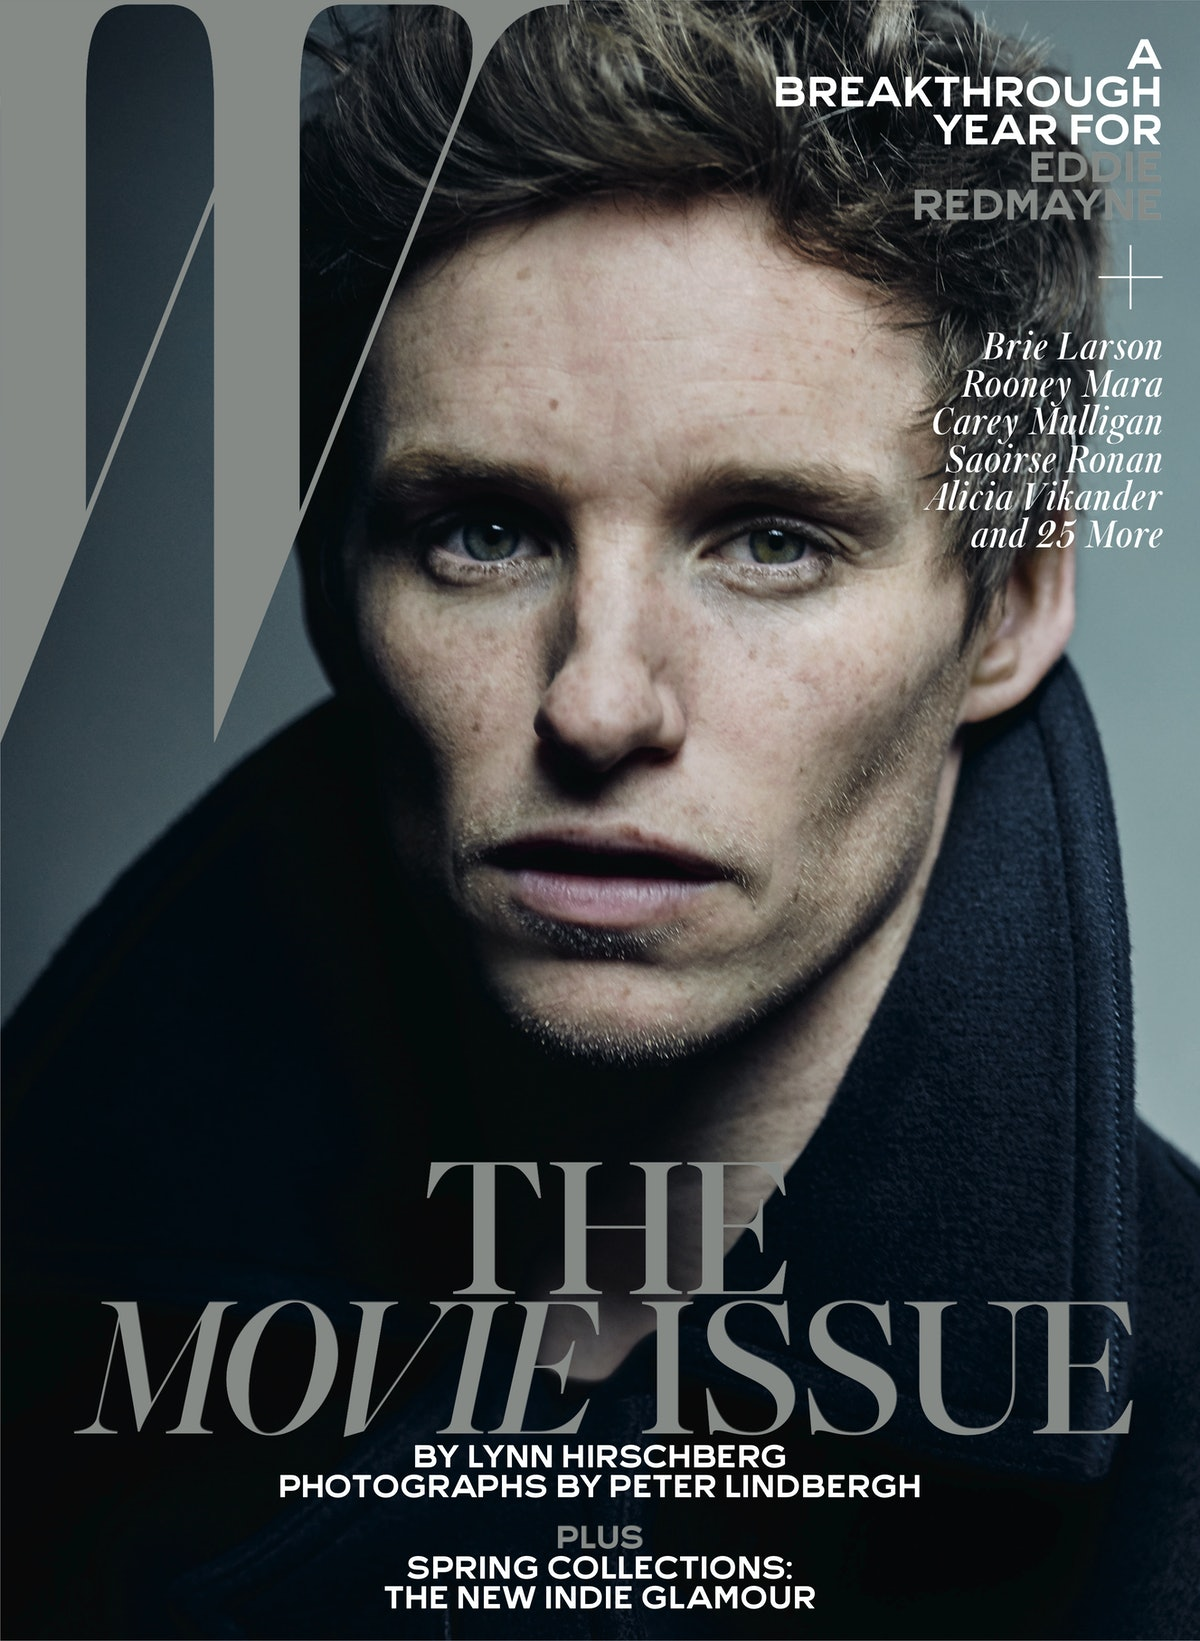 Redmayne wears Burberry peacoat and T-shirt. Grooming: Burberry.